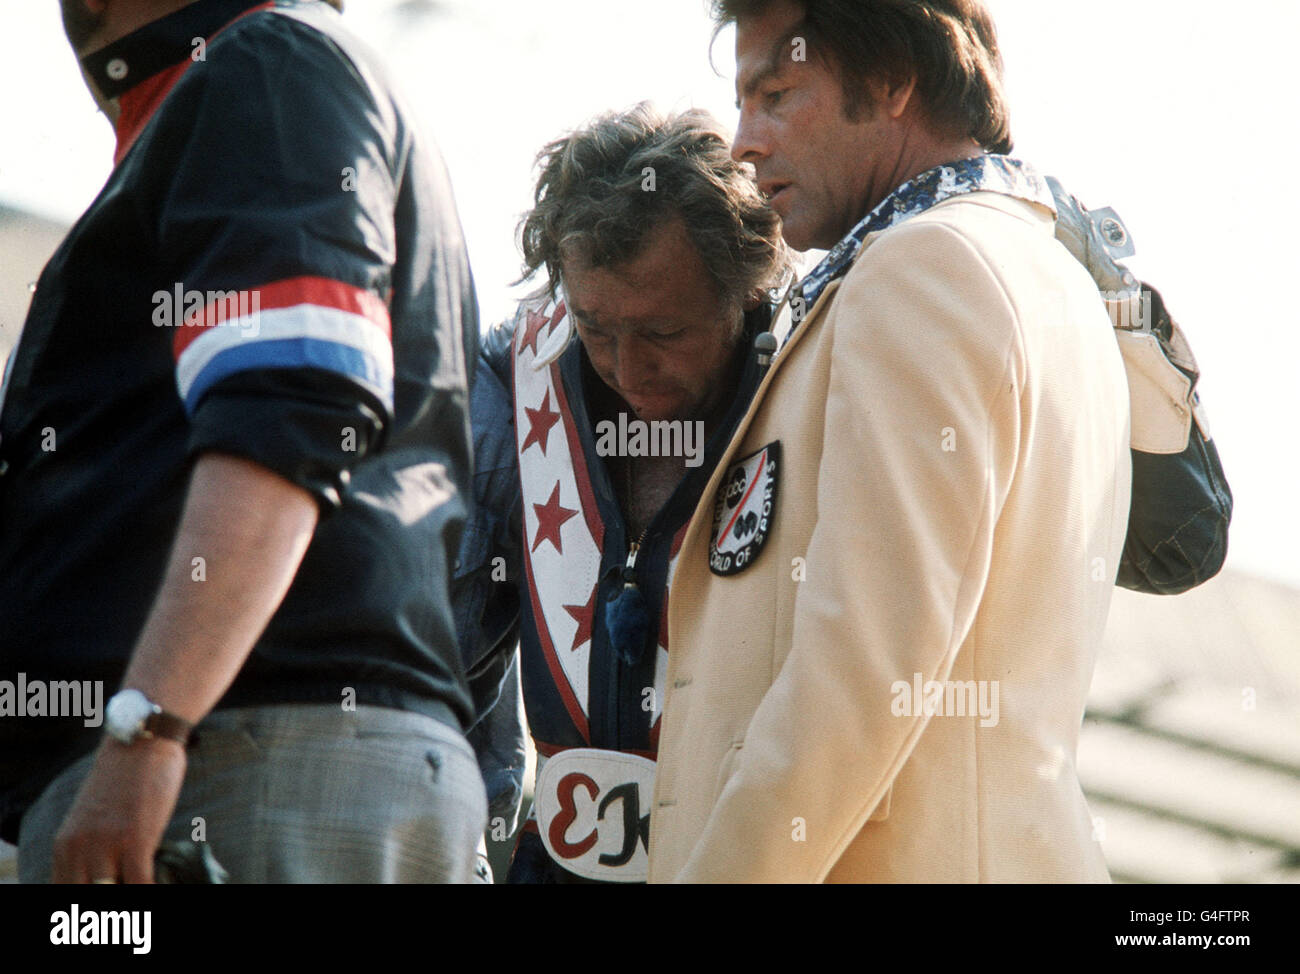 1977 Viva Knievel Doing Daredevil Stunt Evel Harley: Evel Knievel Stock Photos & Evel Knievel Stock Images